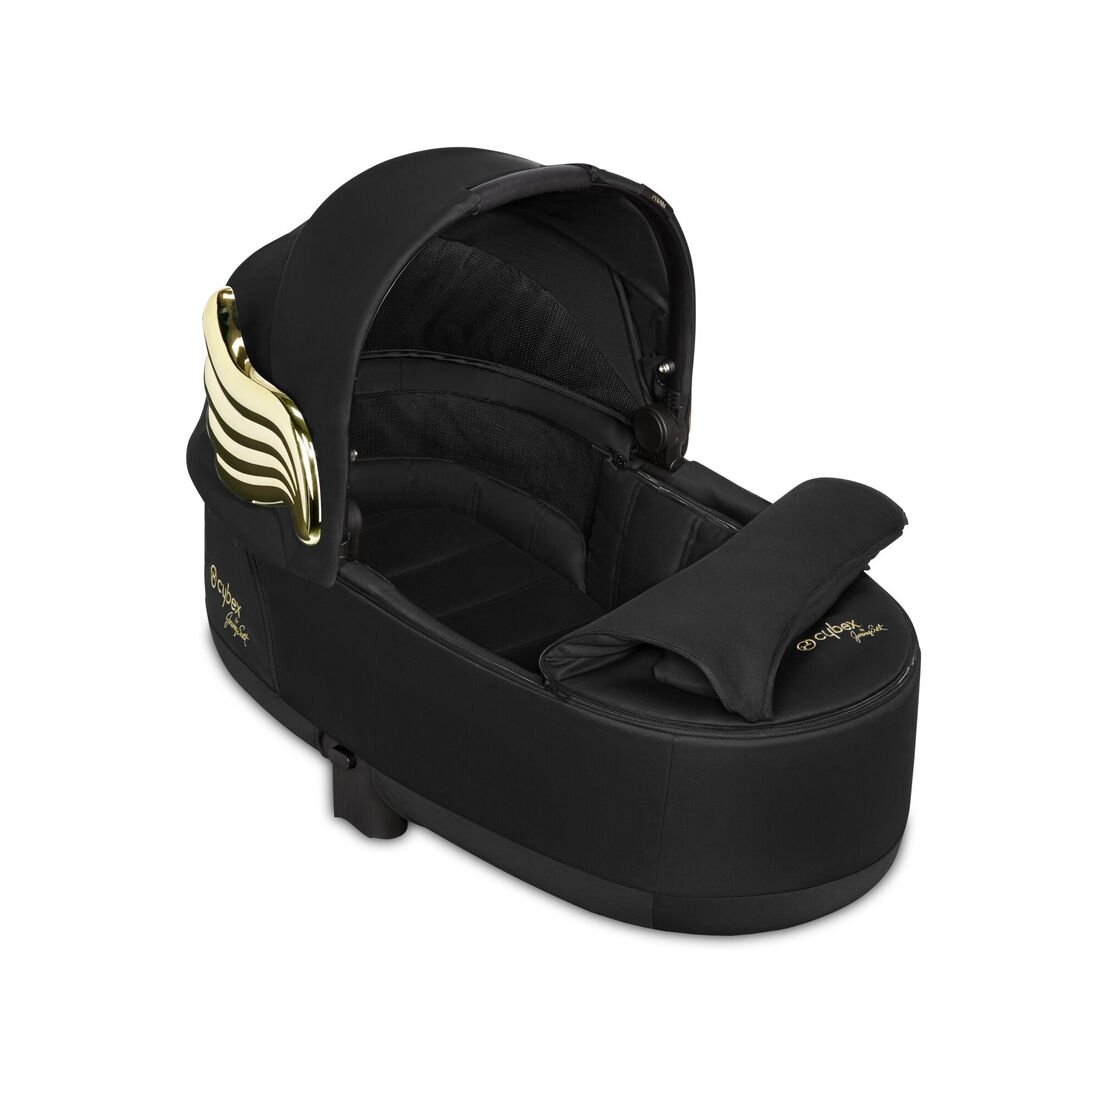 CYBEX Priam Lux Carry Cot - Wings in Wings large Bild 2